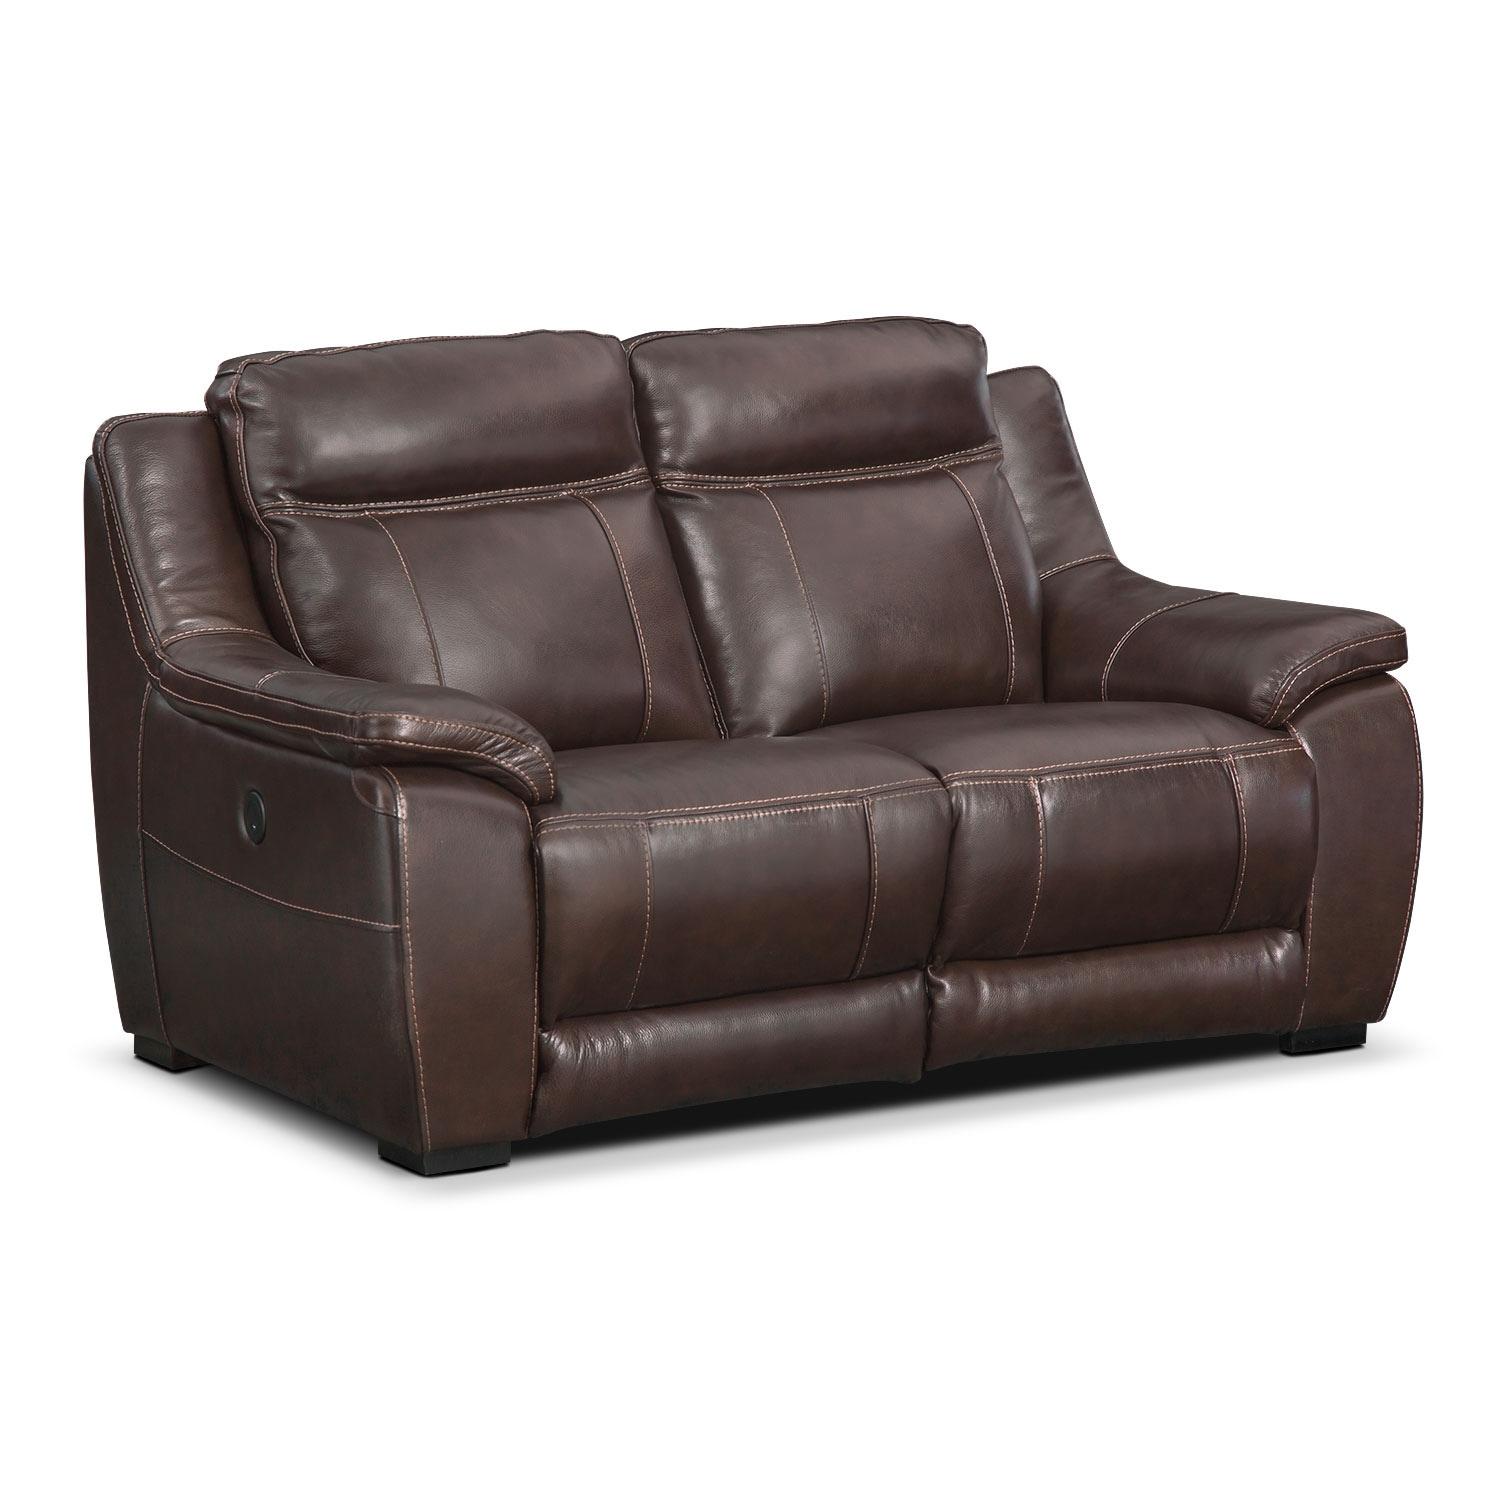 Lido Power Reclining Loveseat Brown Value City